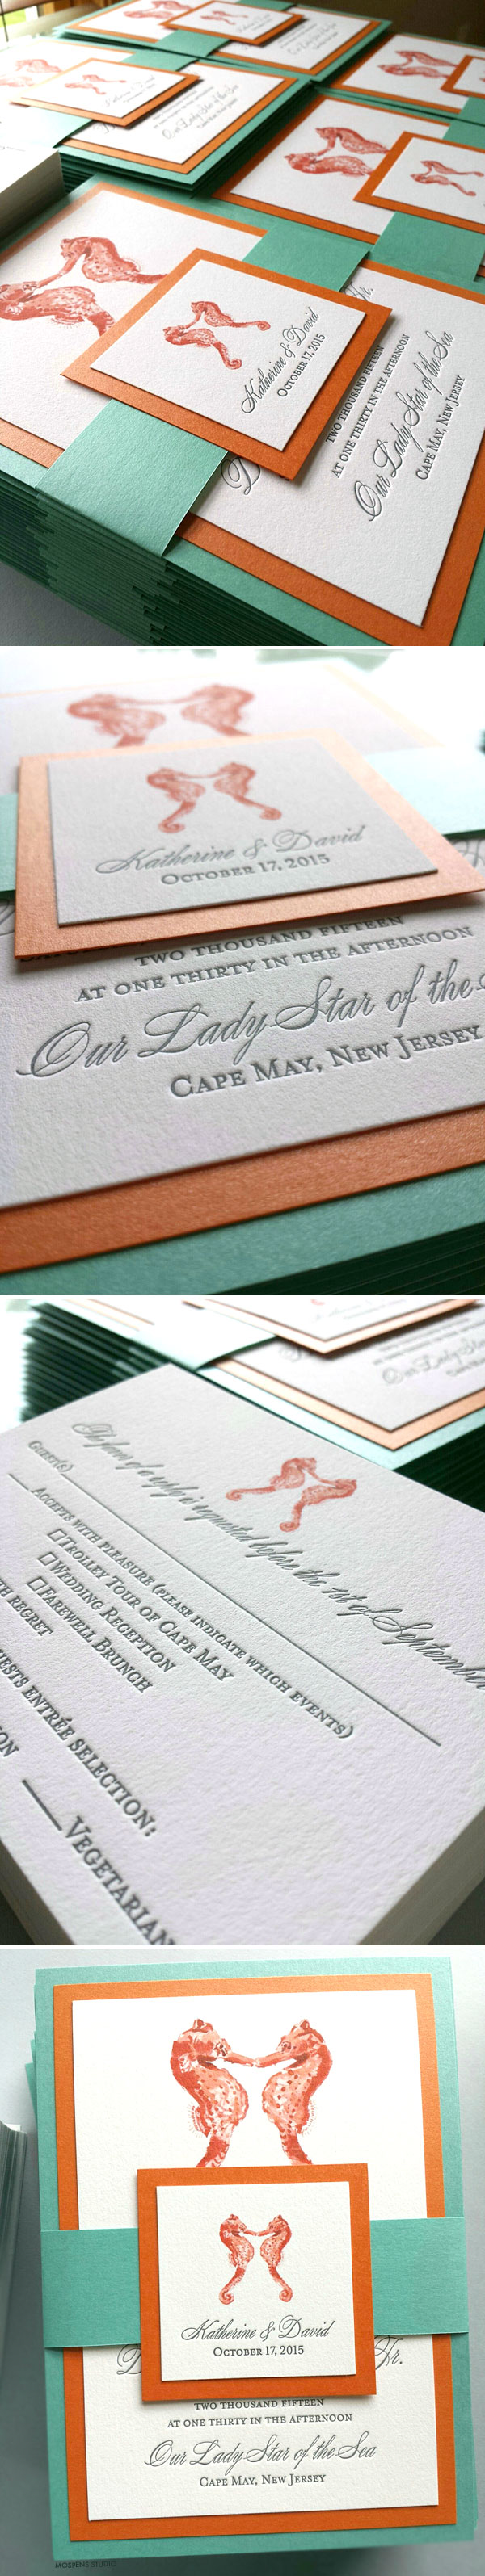 Beautiful Beach Wedding Invitations - The sea-worthy design features original seahorses watercolor art, letterpress printing, custom belt, and 3 card layers. Completely customizable! Available online www.mospensstudio.com